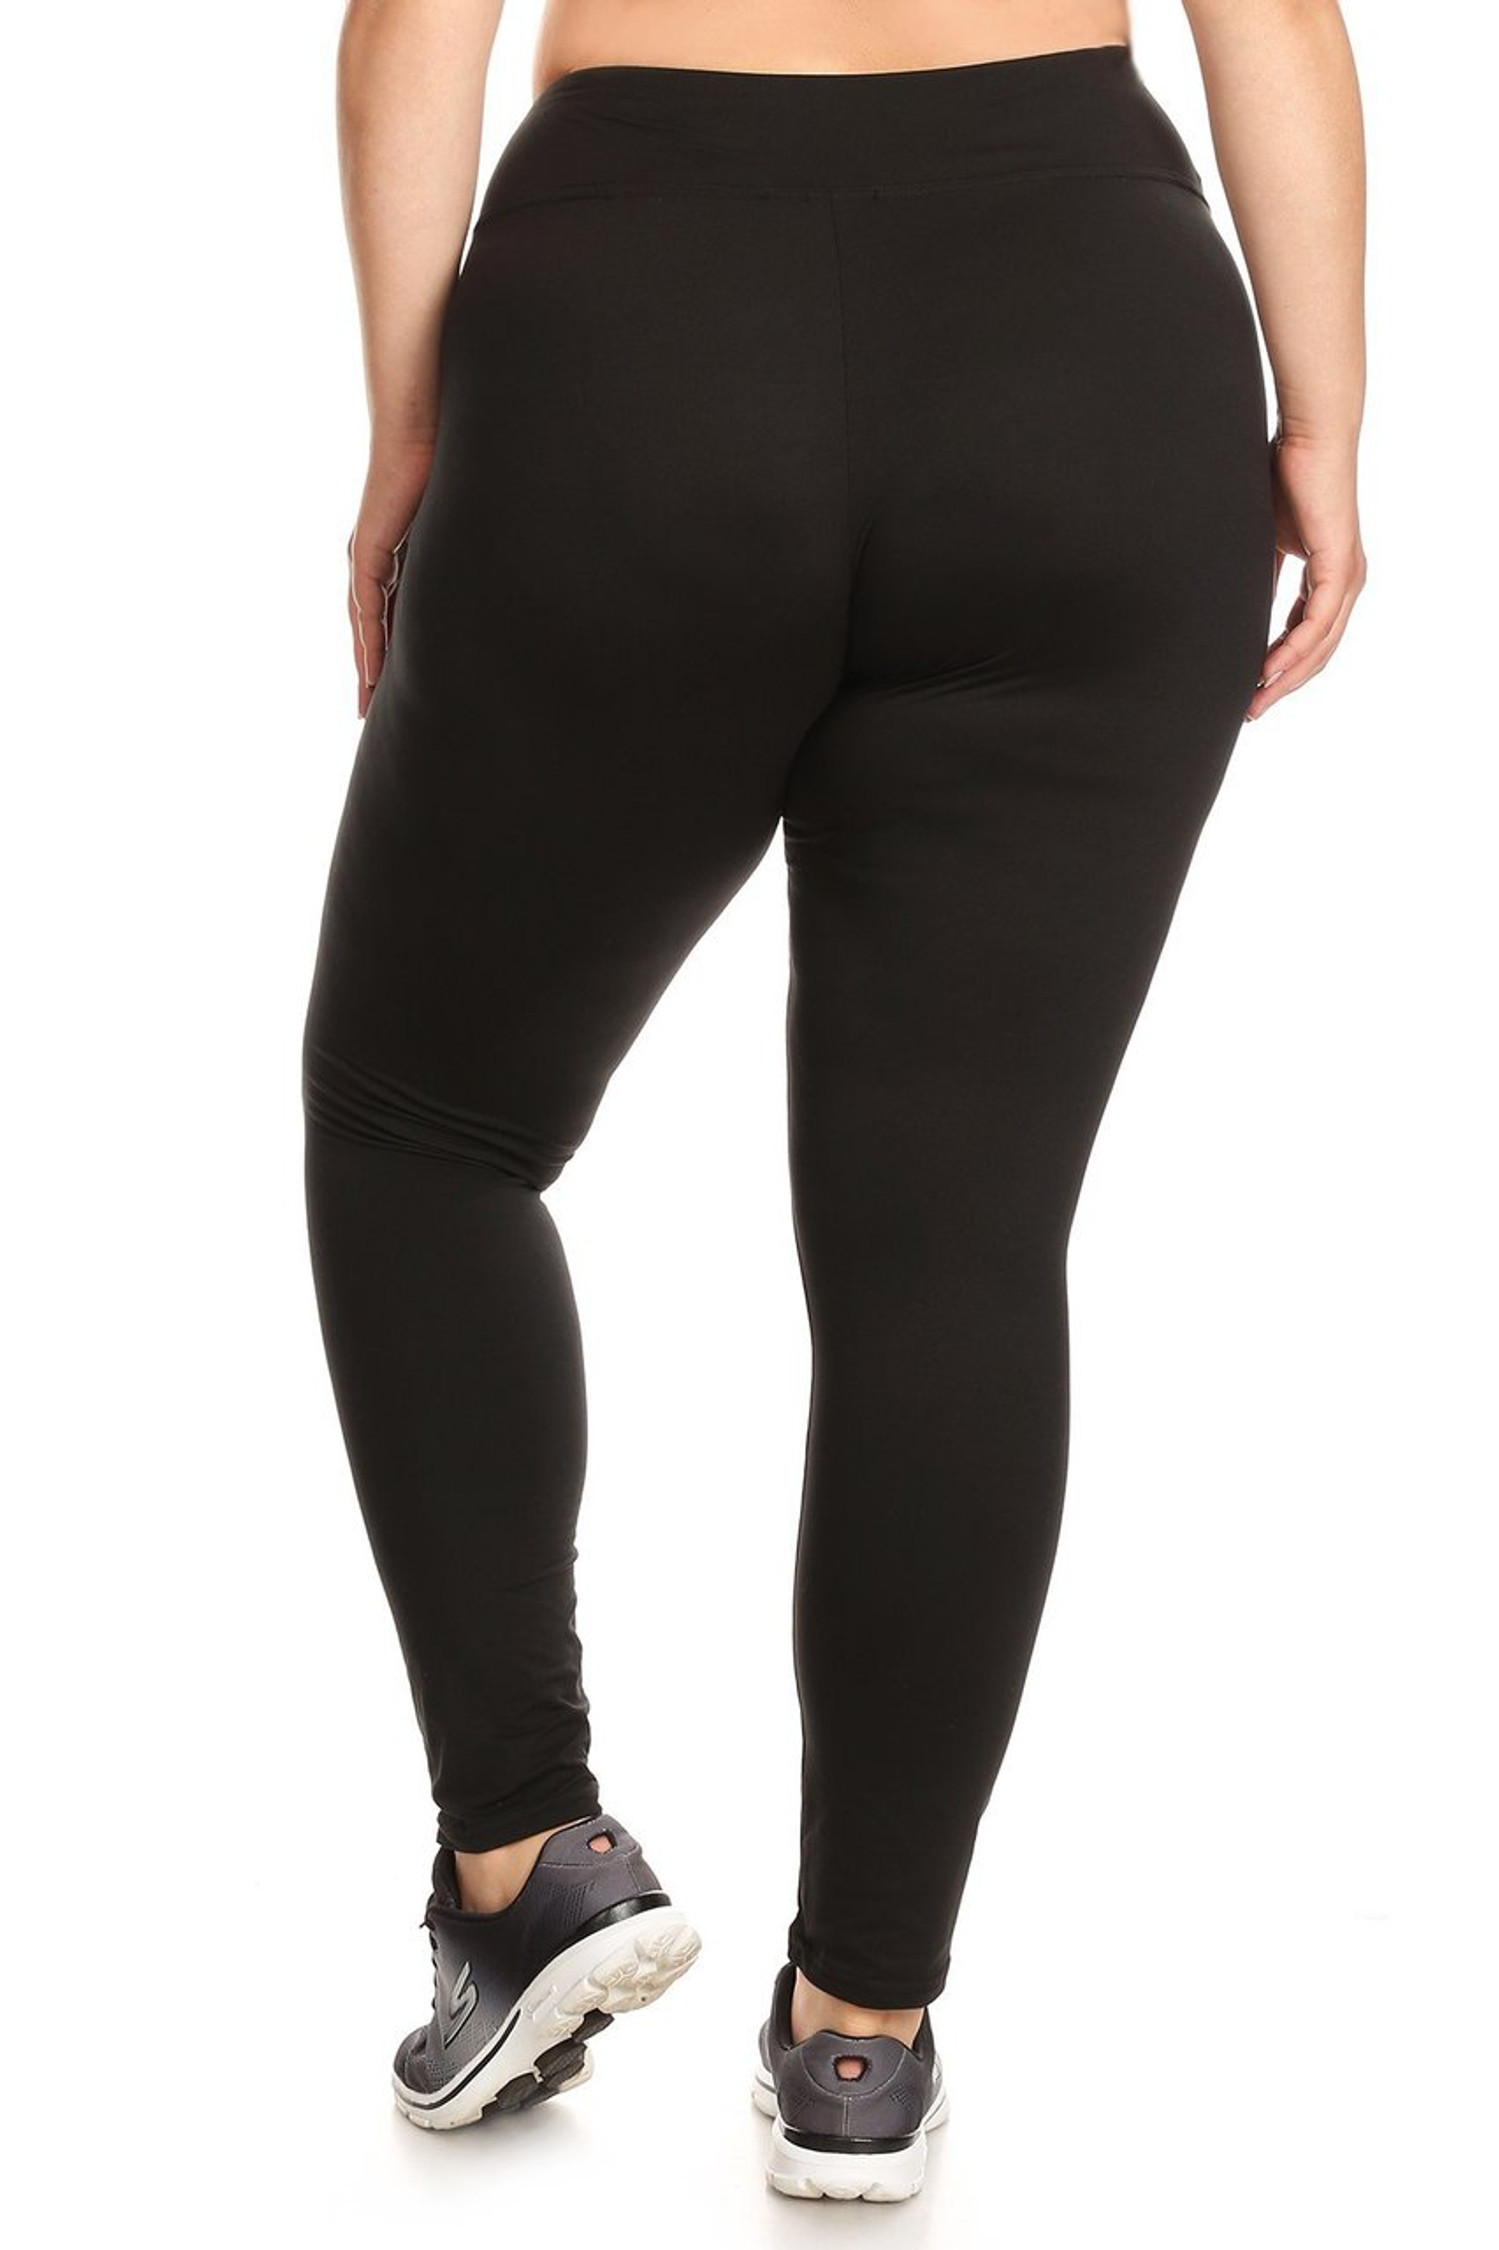 Brushed  back image of X7L105 - High Waisted Fleece Lined Sport Plus Size Leggings